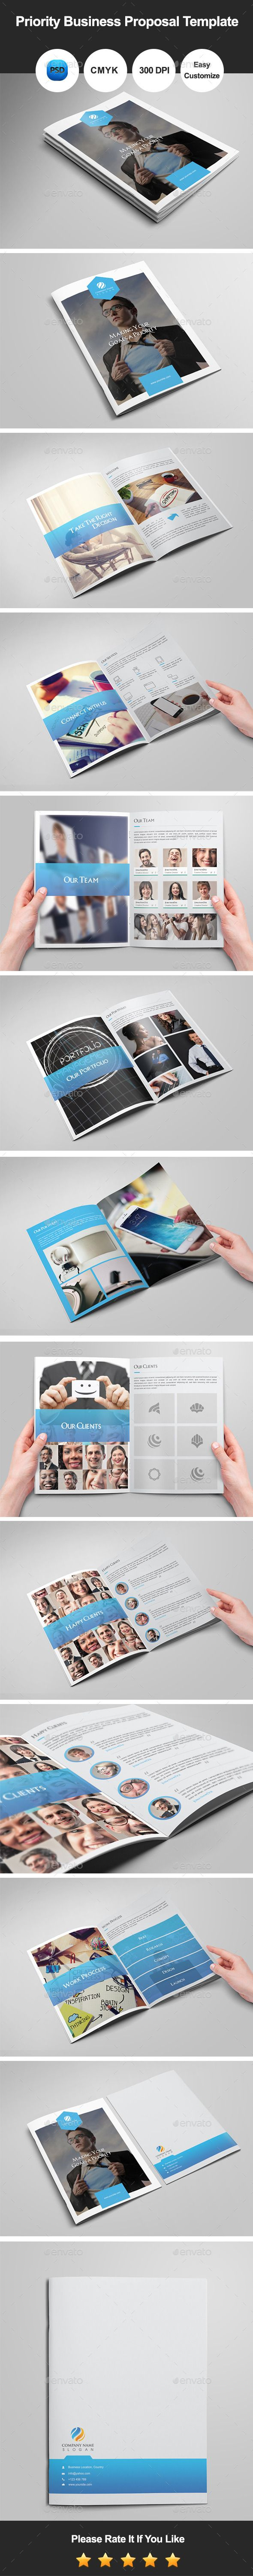 Priority Business Proposal Template by graphicsdesignator We